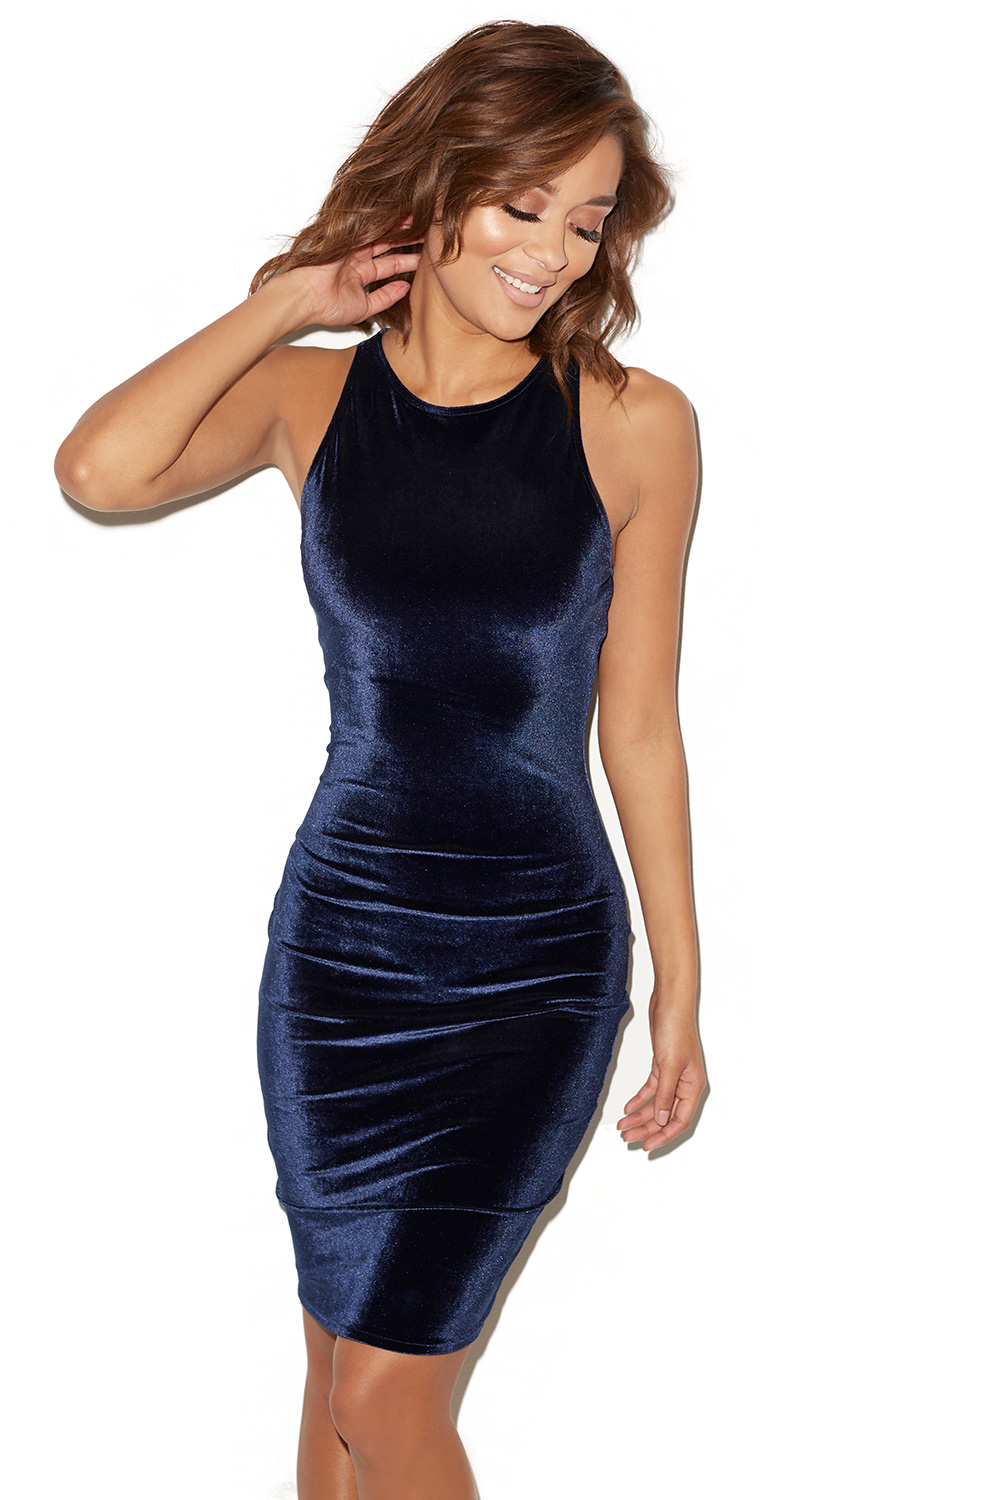 Shop Midnight Velvet Women's Dresses at up to 70% off! Get the lowest price on your favorite brands at Poshmark. Poshmark makes shopping fun, affordable & easy!